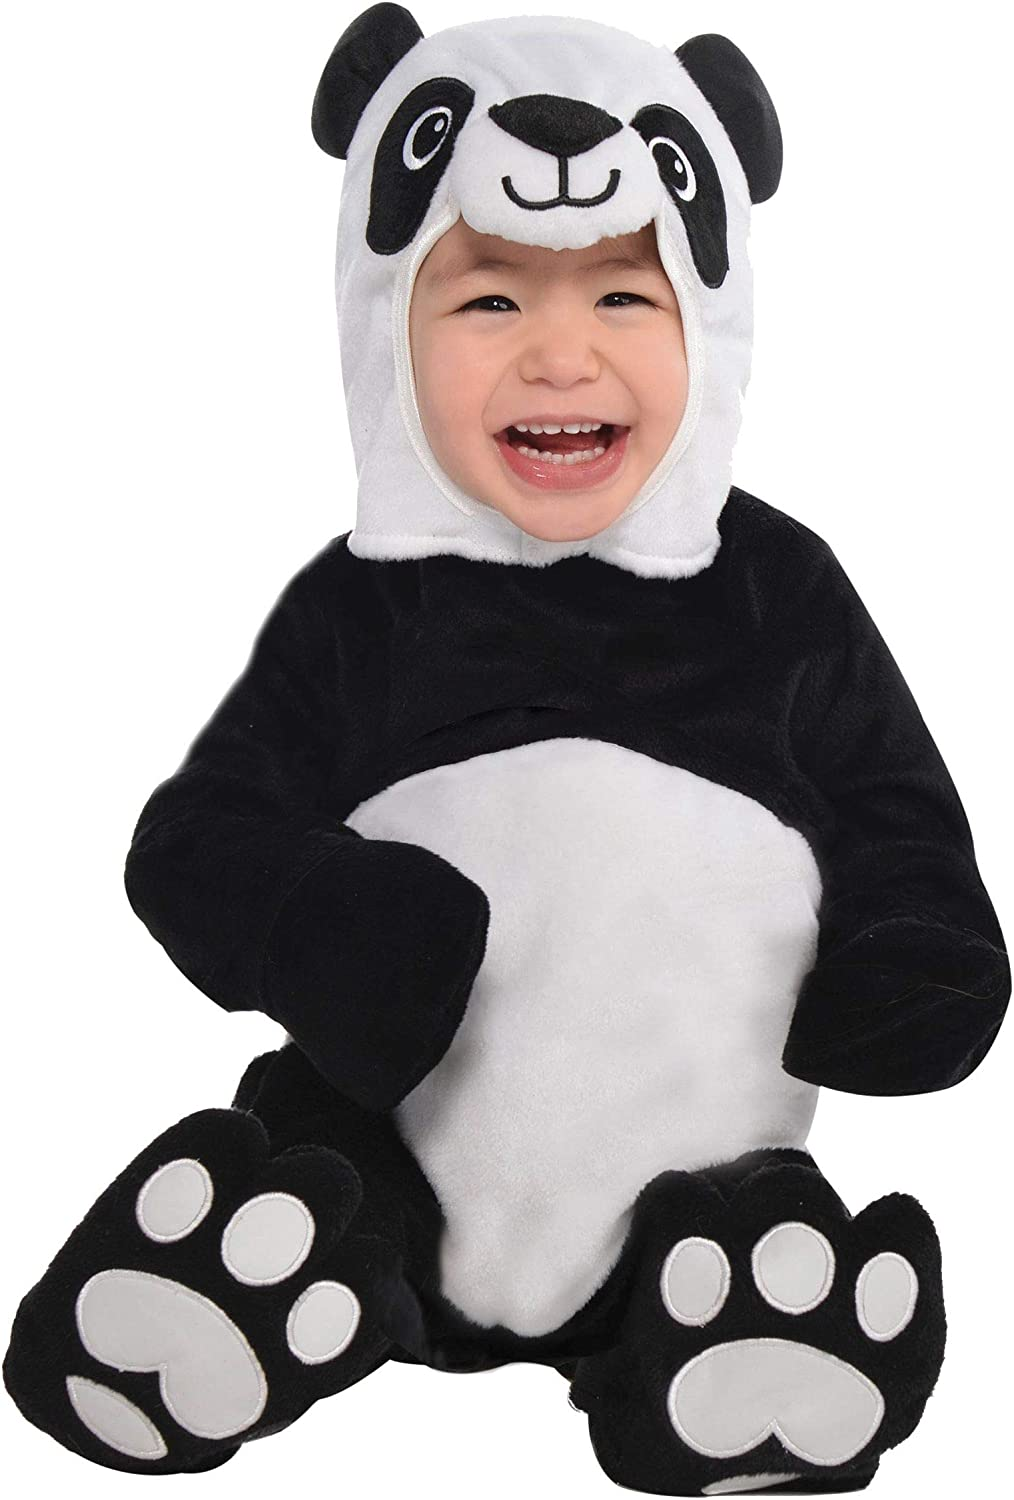 Dress Up Precious Panda disfraz de bebé, 0 – 6 meses: Amazon.es: Bebé